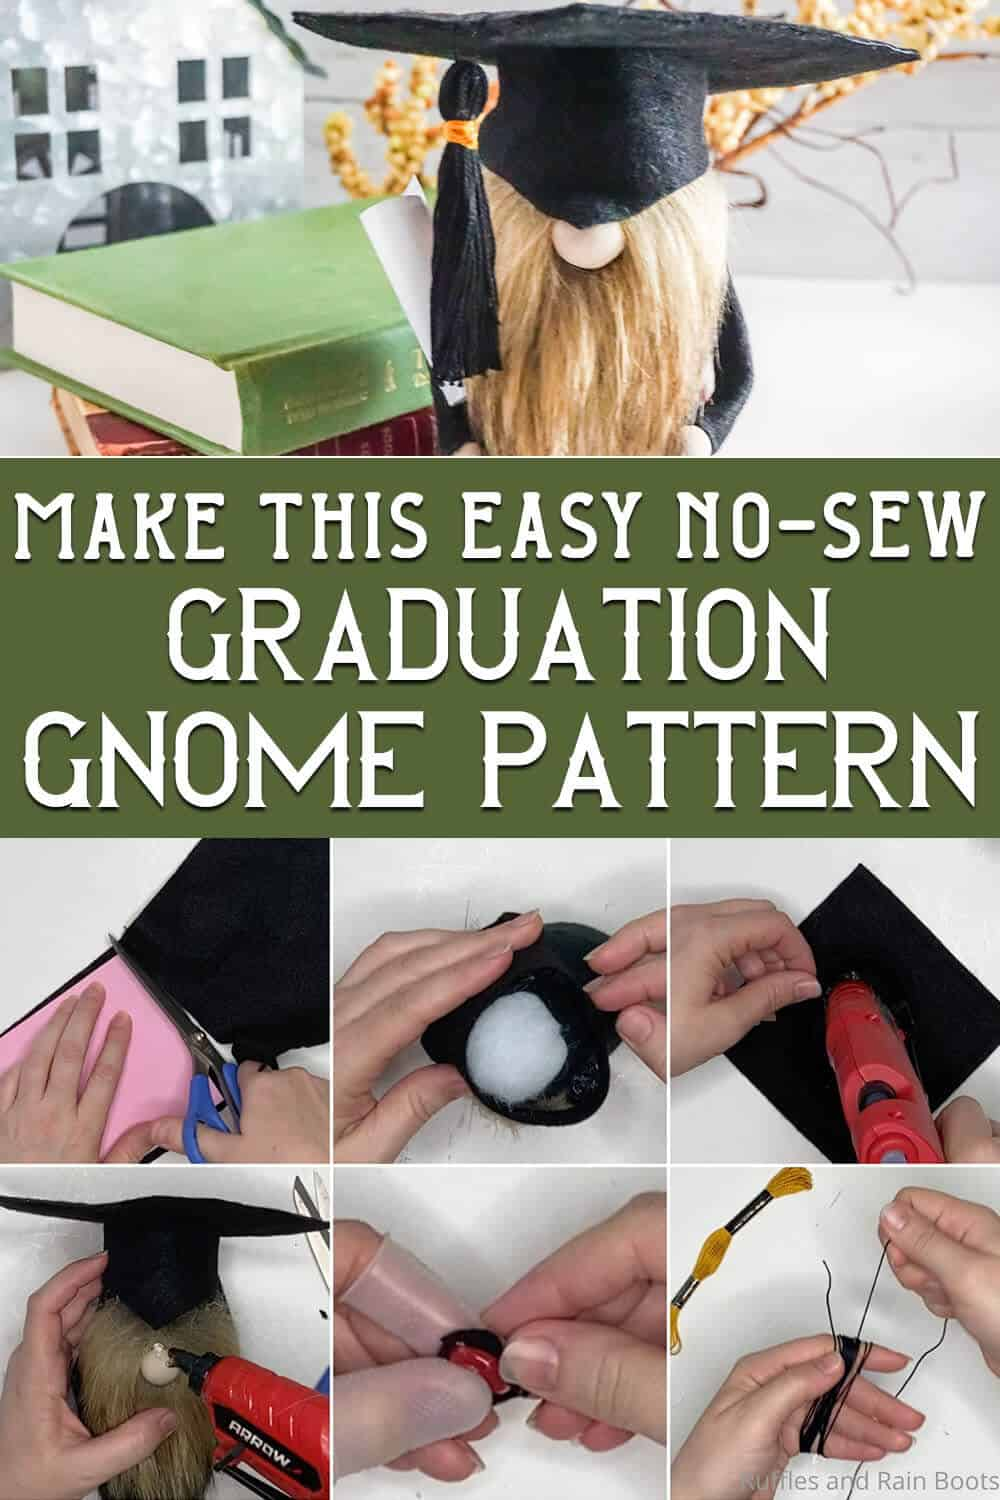 photo collage of graduation gnome pattern cap and gown with text which reads make this easy no-sew graduation gnome pattern